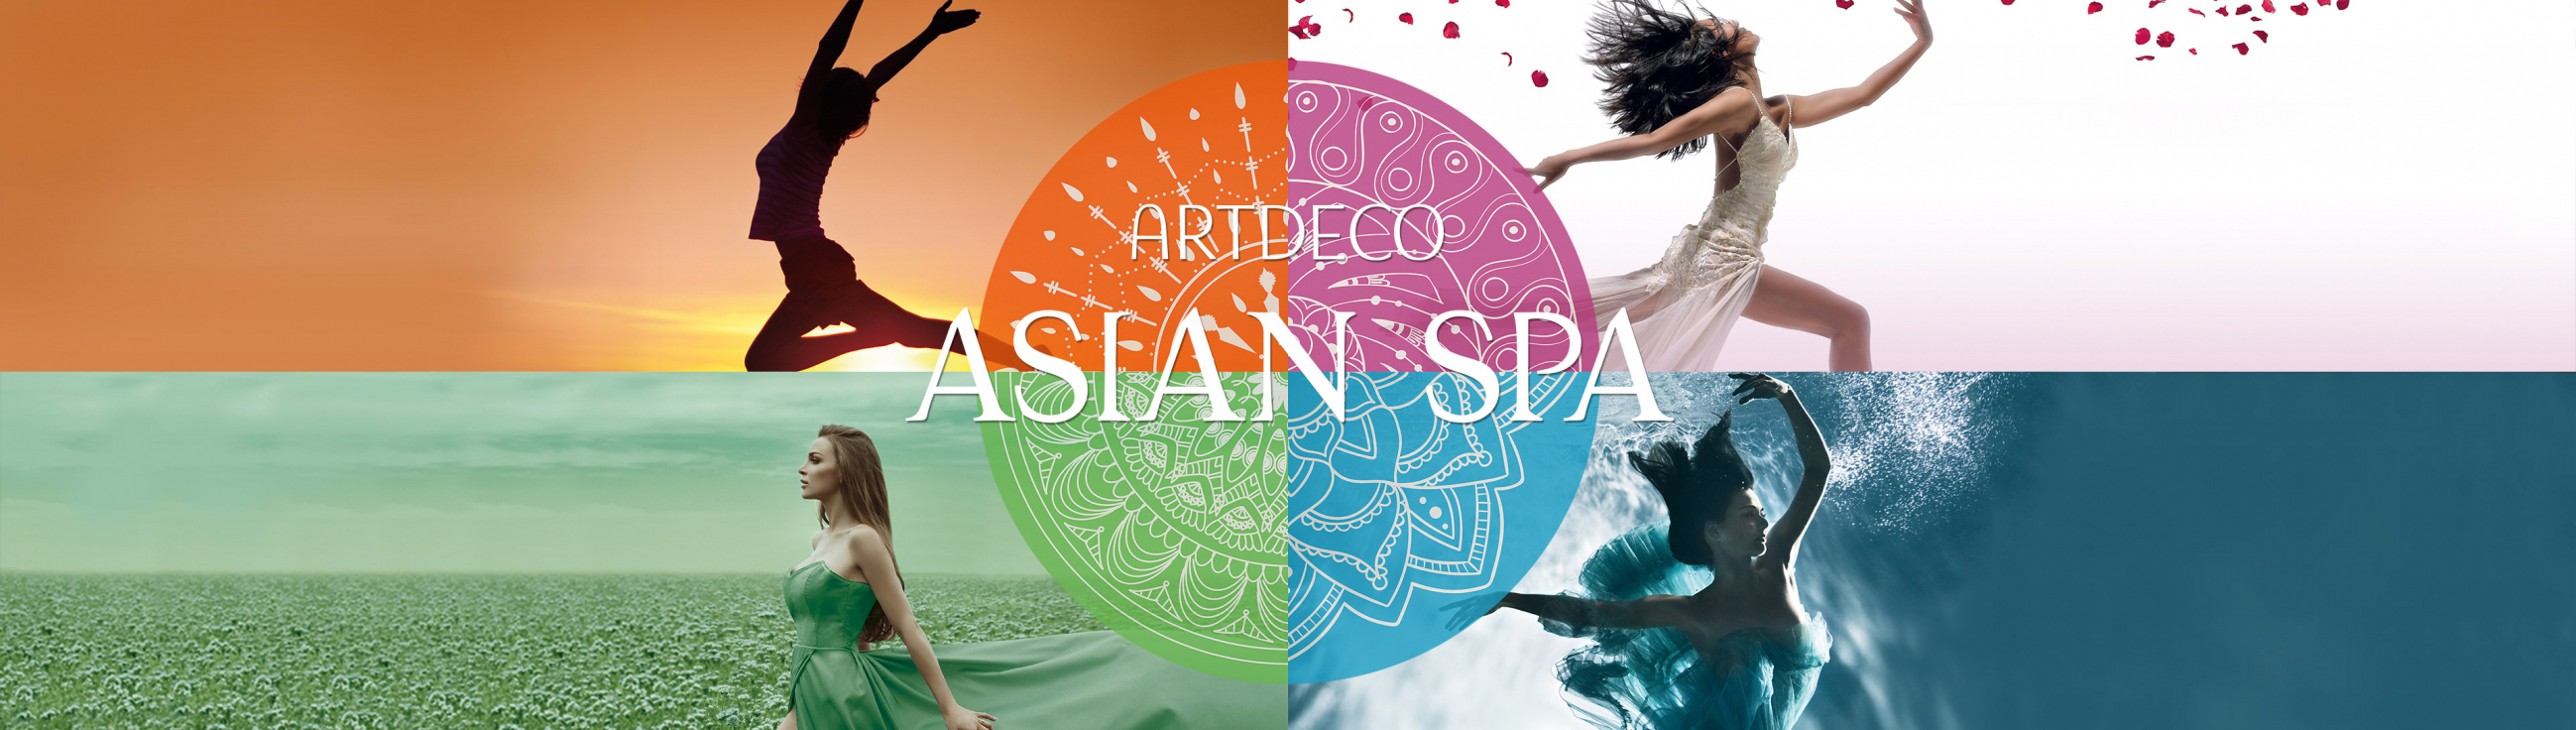 Asian-Spa-Layoutbild-Kategorie